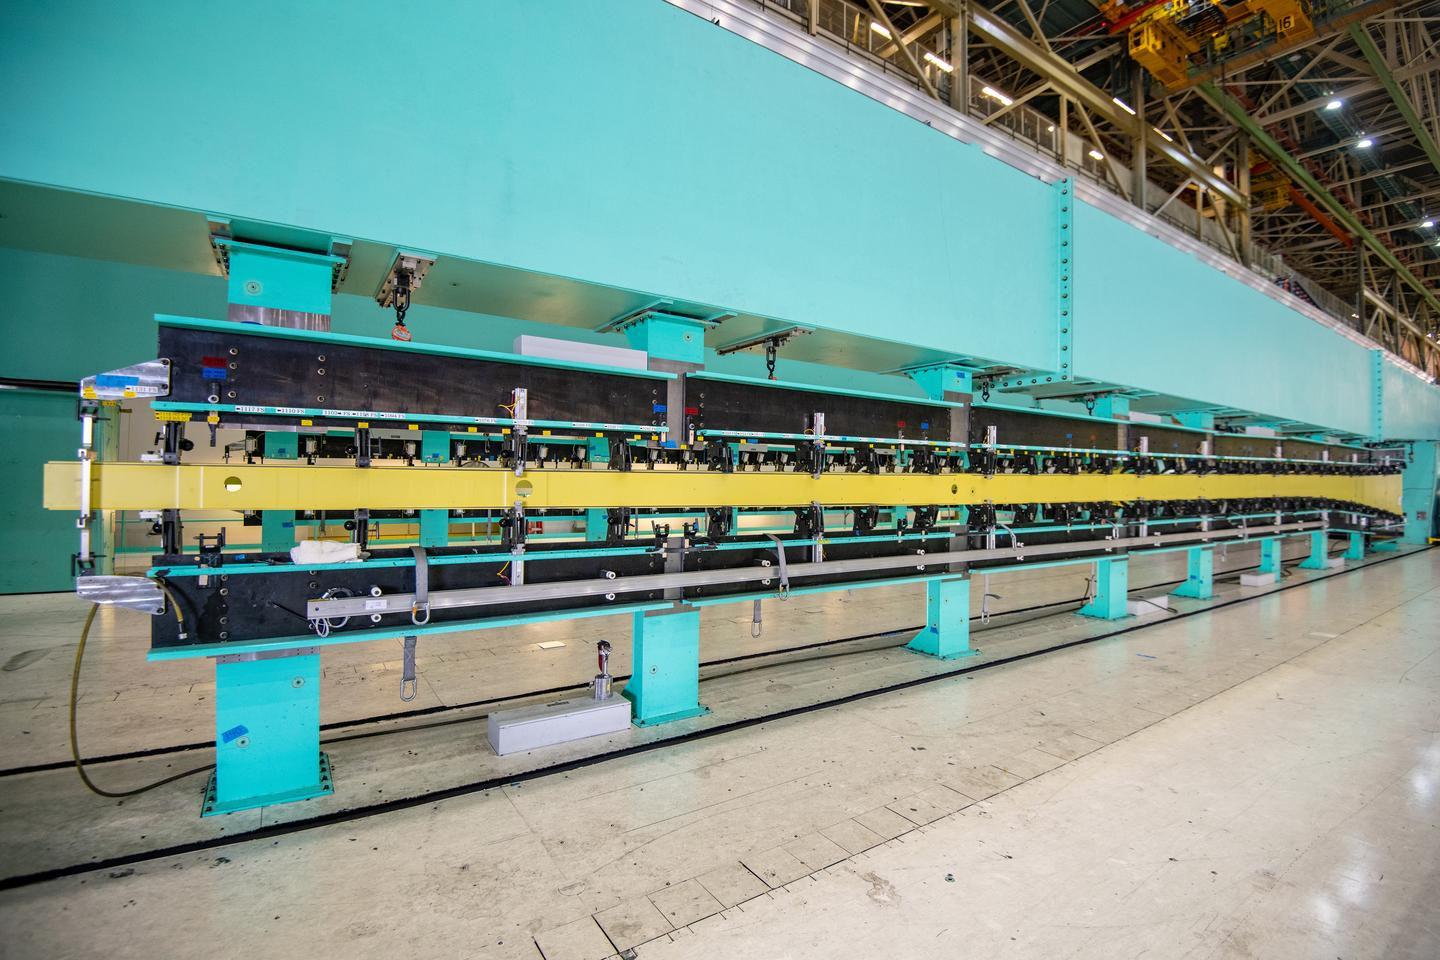 An 82.4-foot long 767 wing spar is loaded into a tool in Boeing's Everett, WA, factory, kicking off assembly of the first KC-46A tanker for Japan